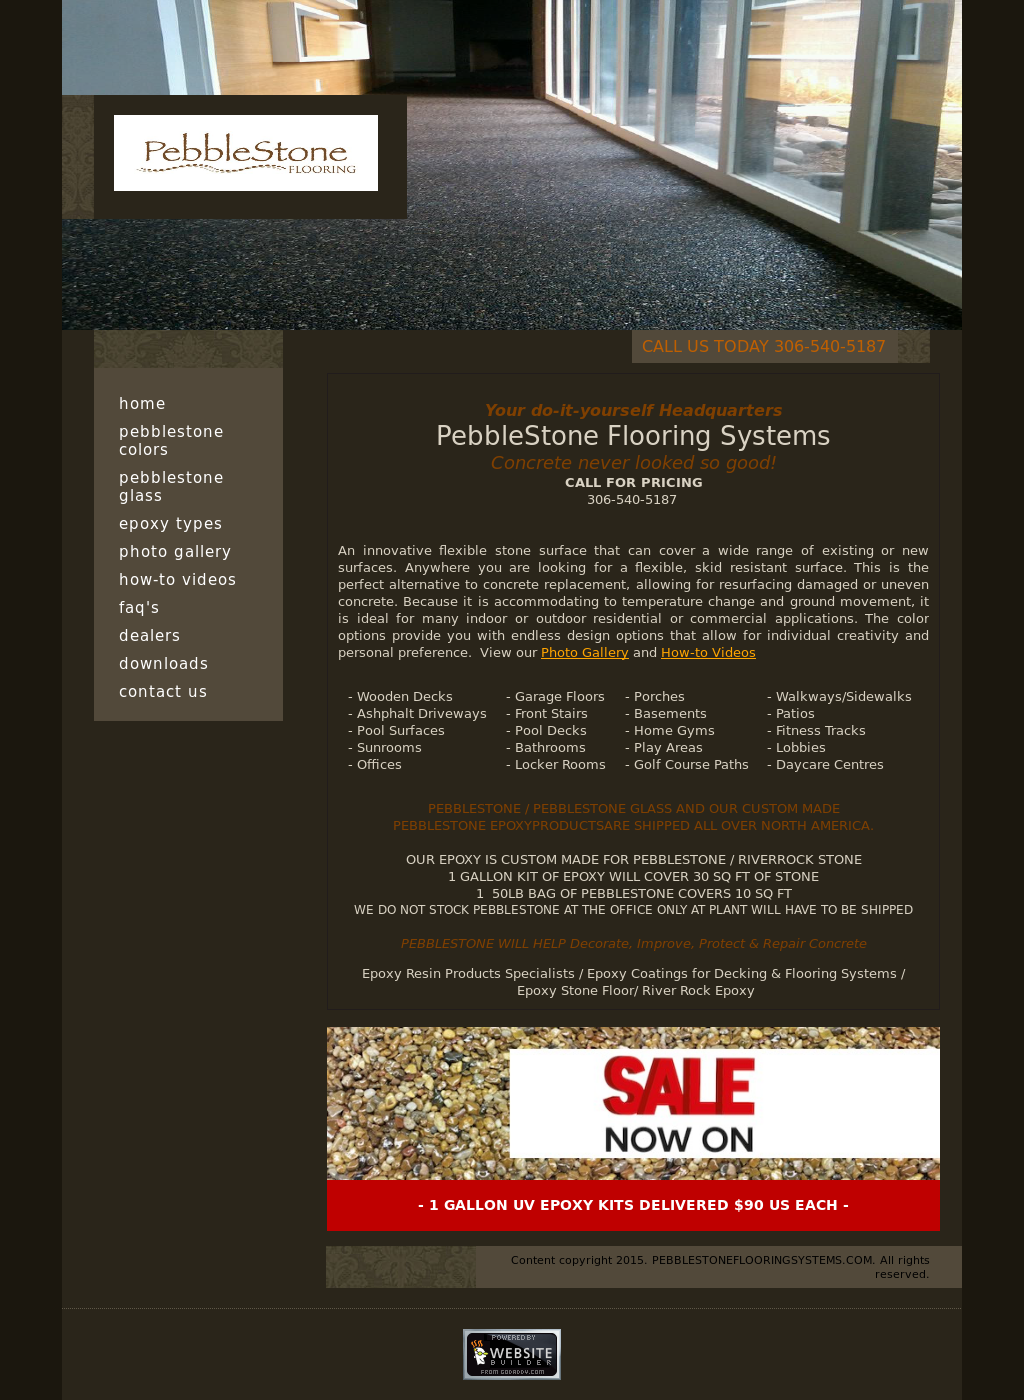 Pebblestone Flooring Systems Competitors Revenue And Employees Owler Company Profile